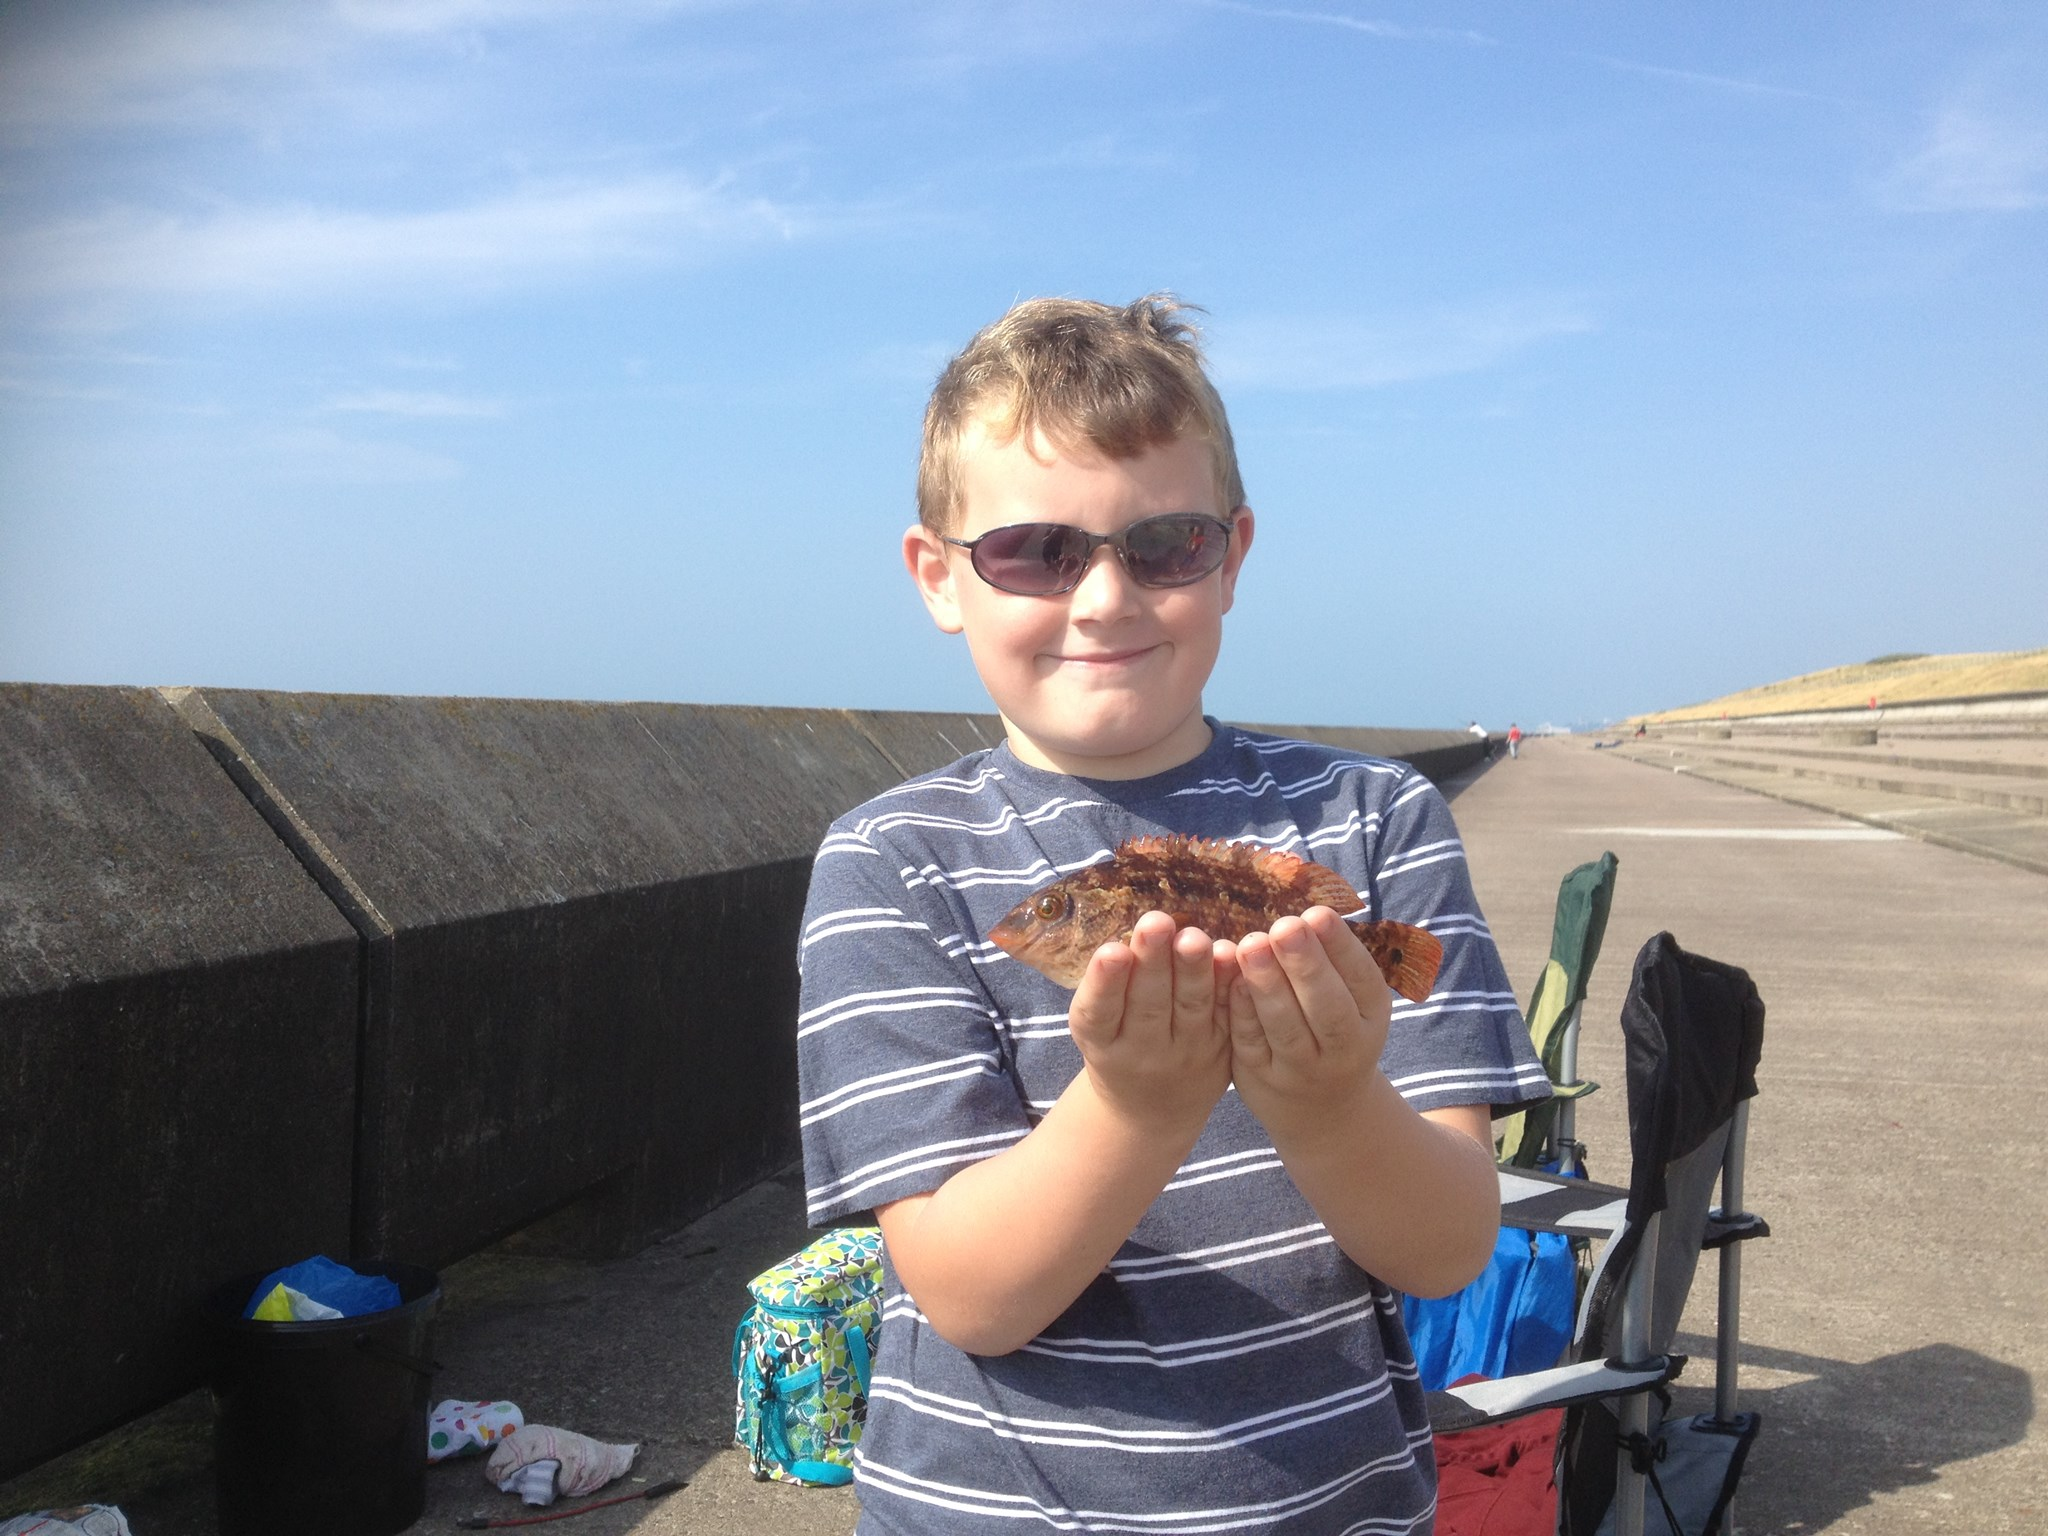 Fishing Summer 2013 - Samphire Hoe.  The one that didn't get away.